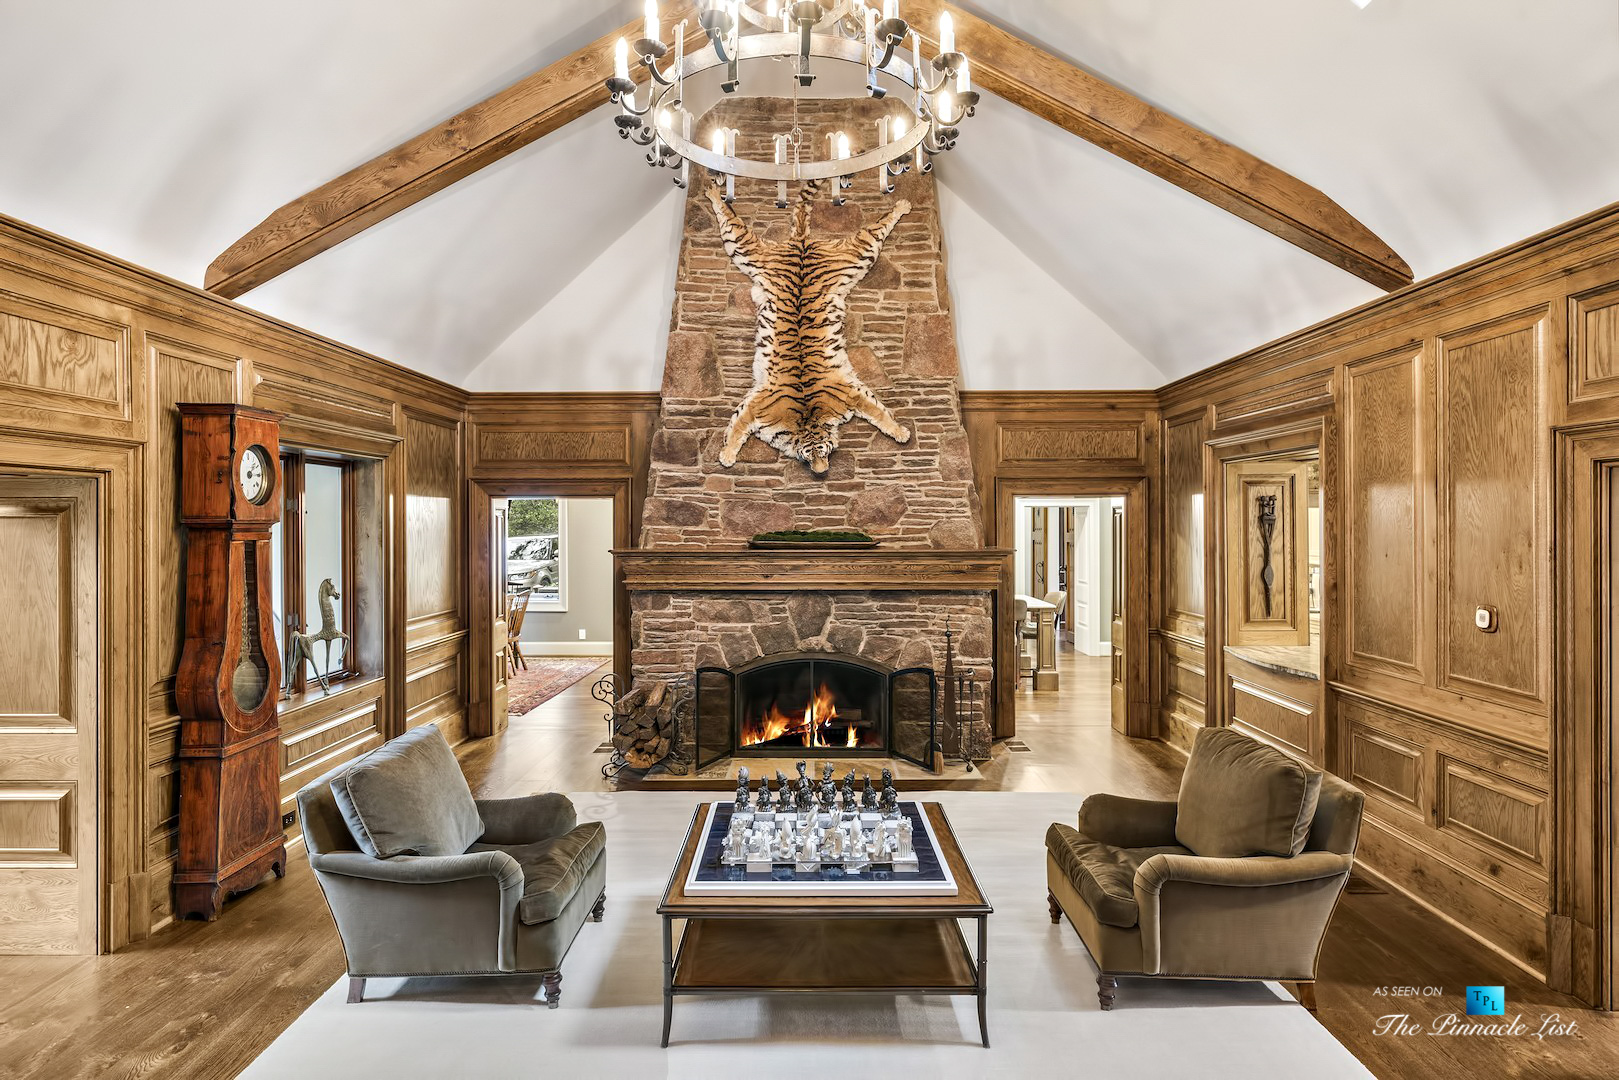 75 Finch Forest Trail, Atlanta, GA, USA – Living Room Fireplace – Luxury Real Estate – Sandy Springs Home